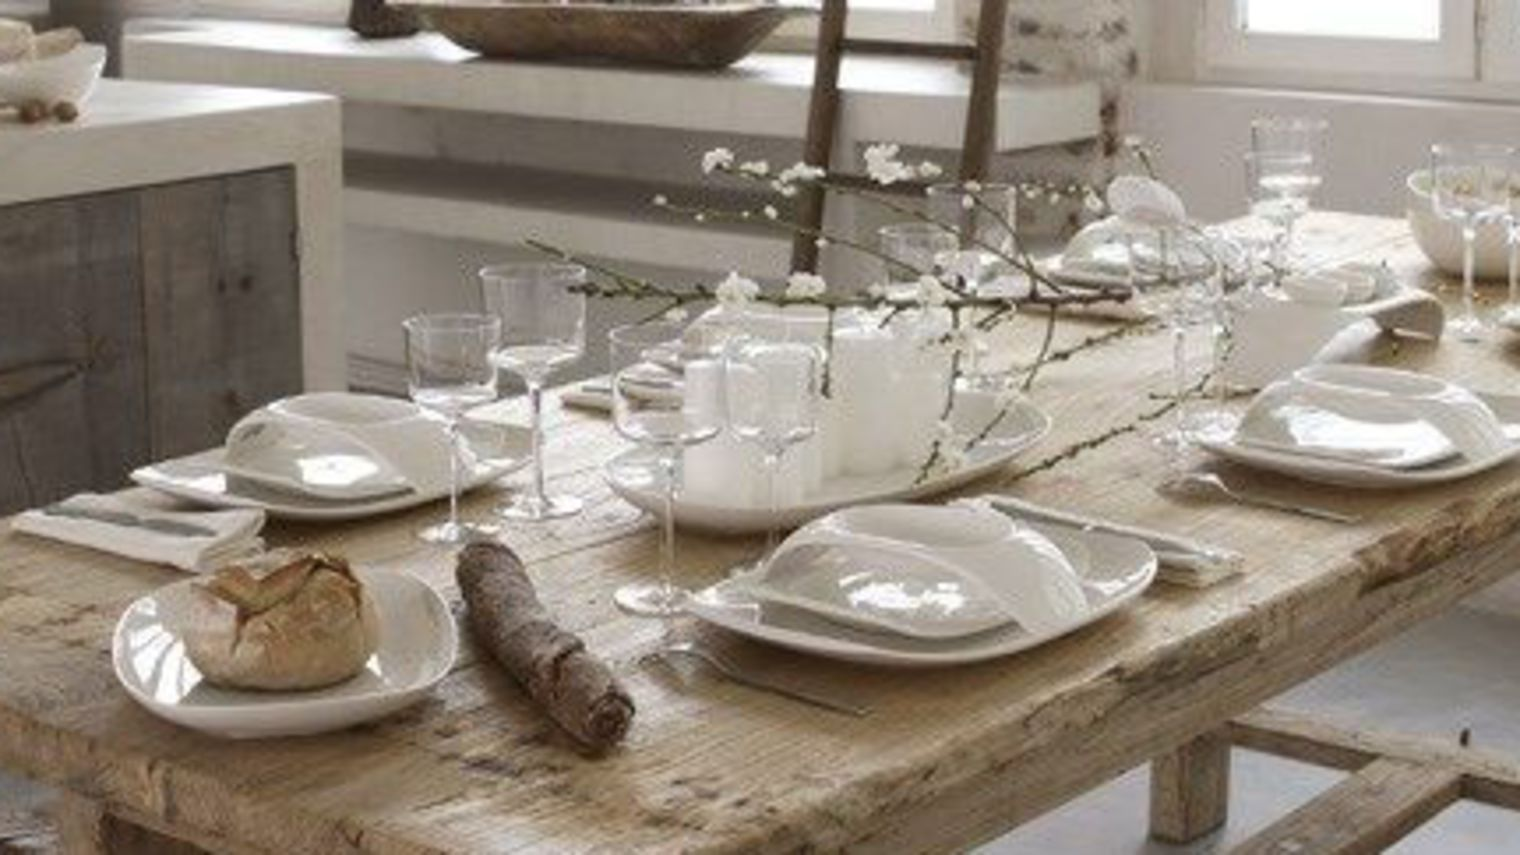 Comment faire une belle table Une deco de table de noel